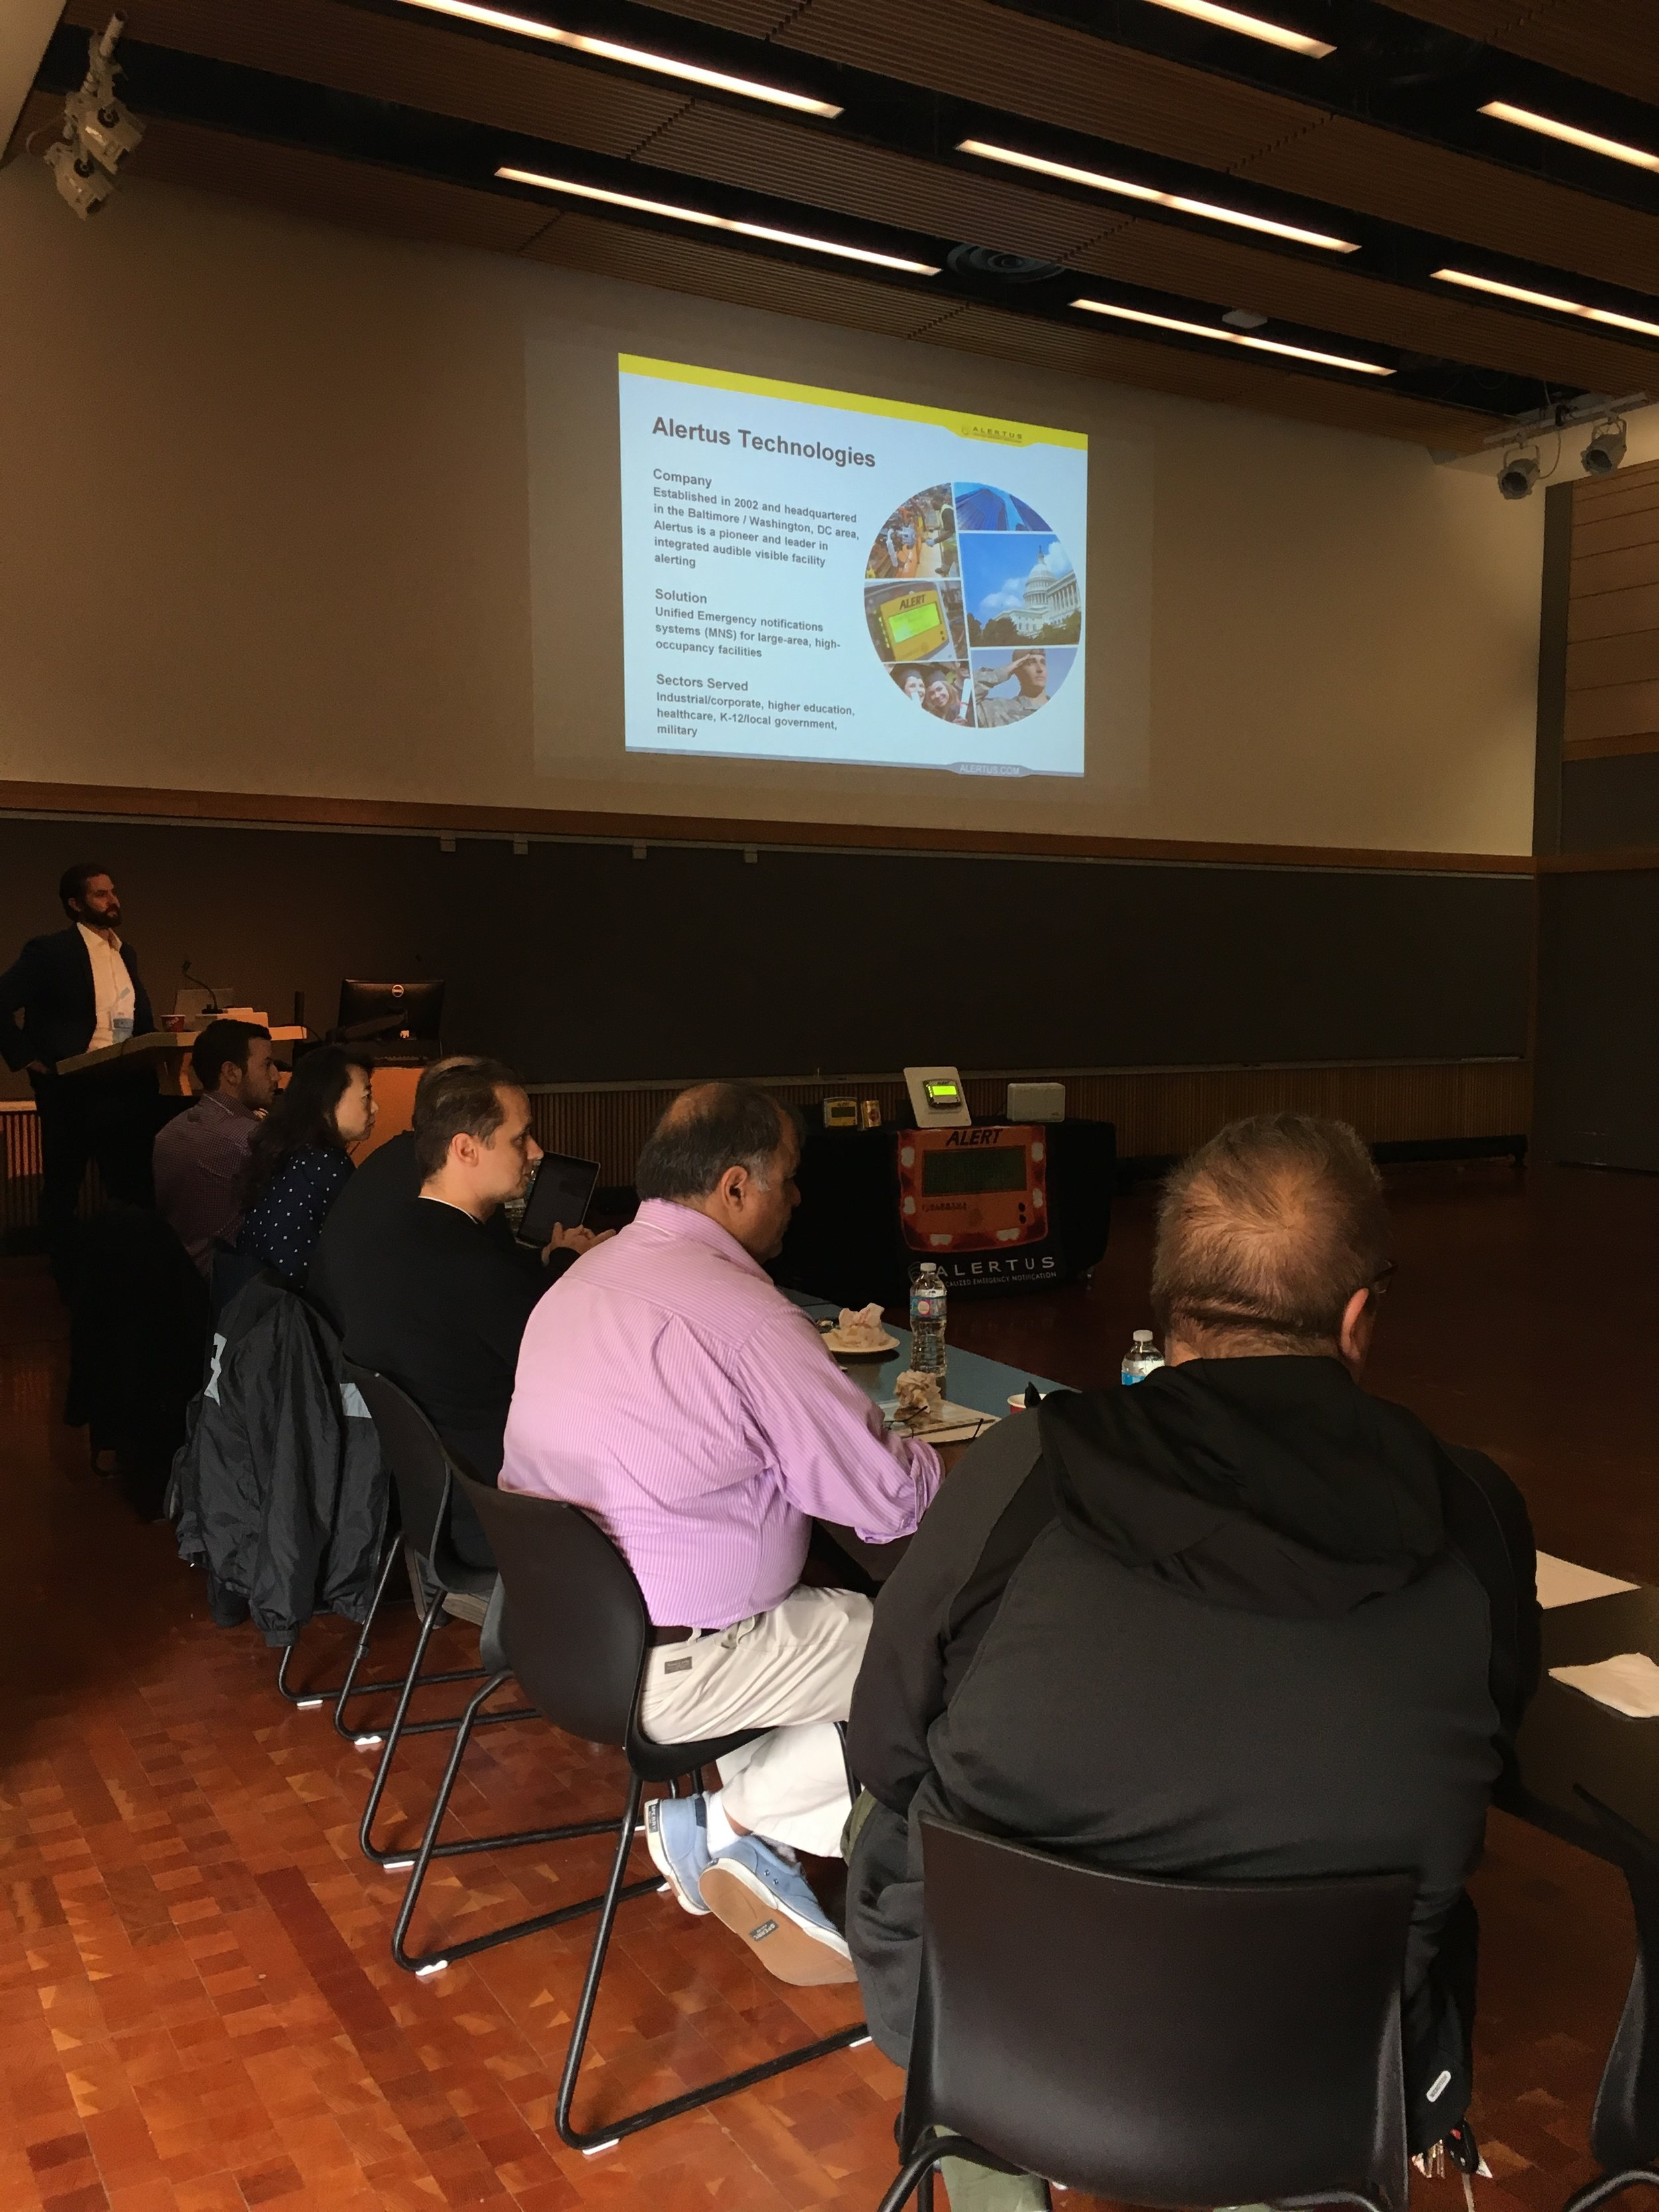 Attendees at the Alertus Emergency Preparedness Seminar at KPU during a Q&A session